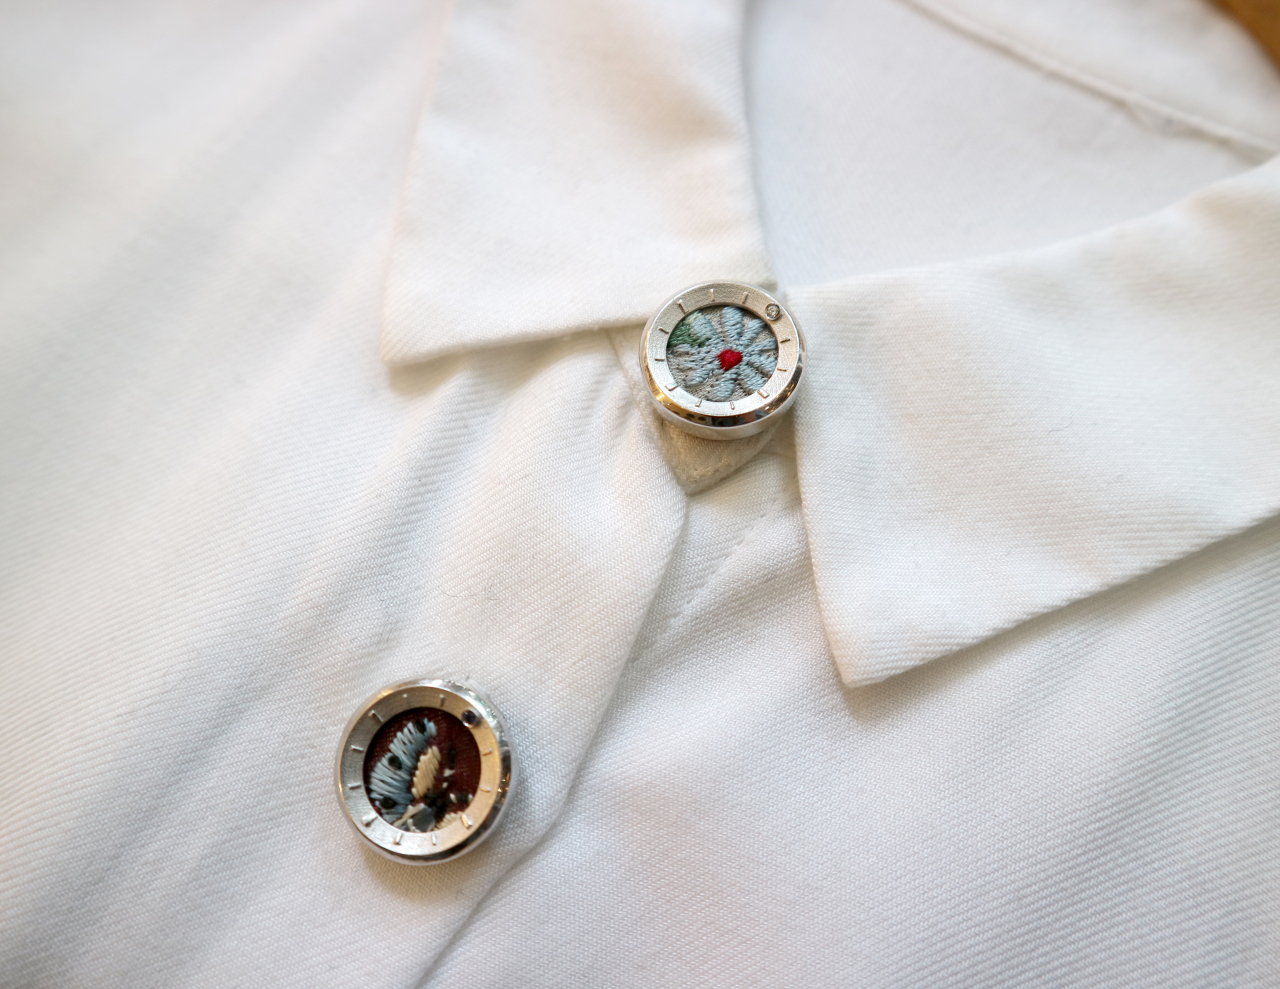 TIMELESS TIME_buttoncovers' by Lim Dong-wook using embroidered parts of hanbok dresses